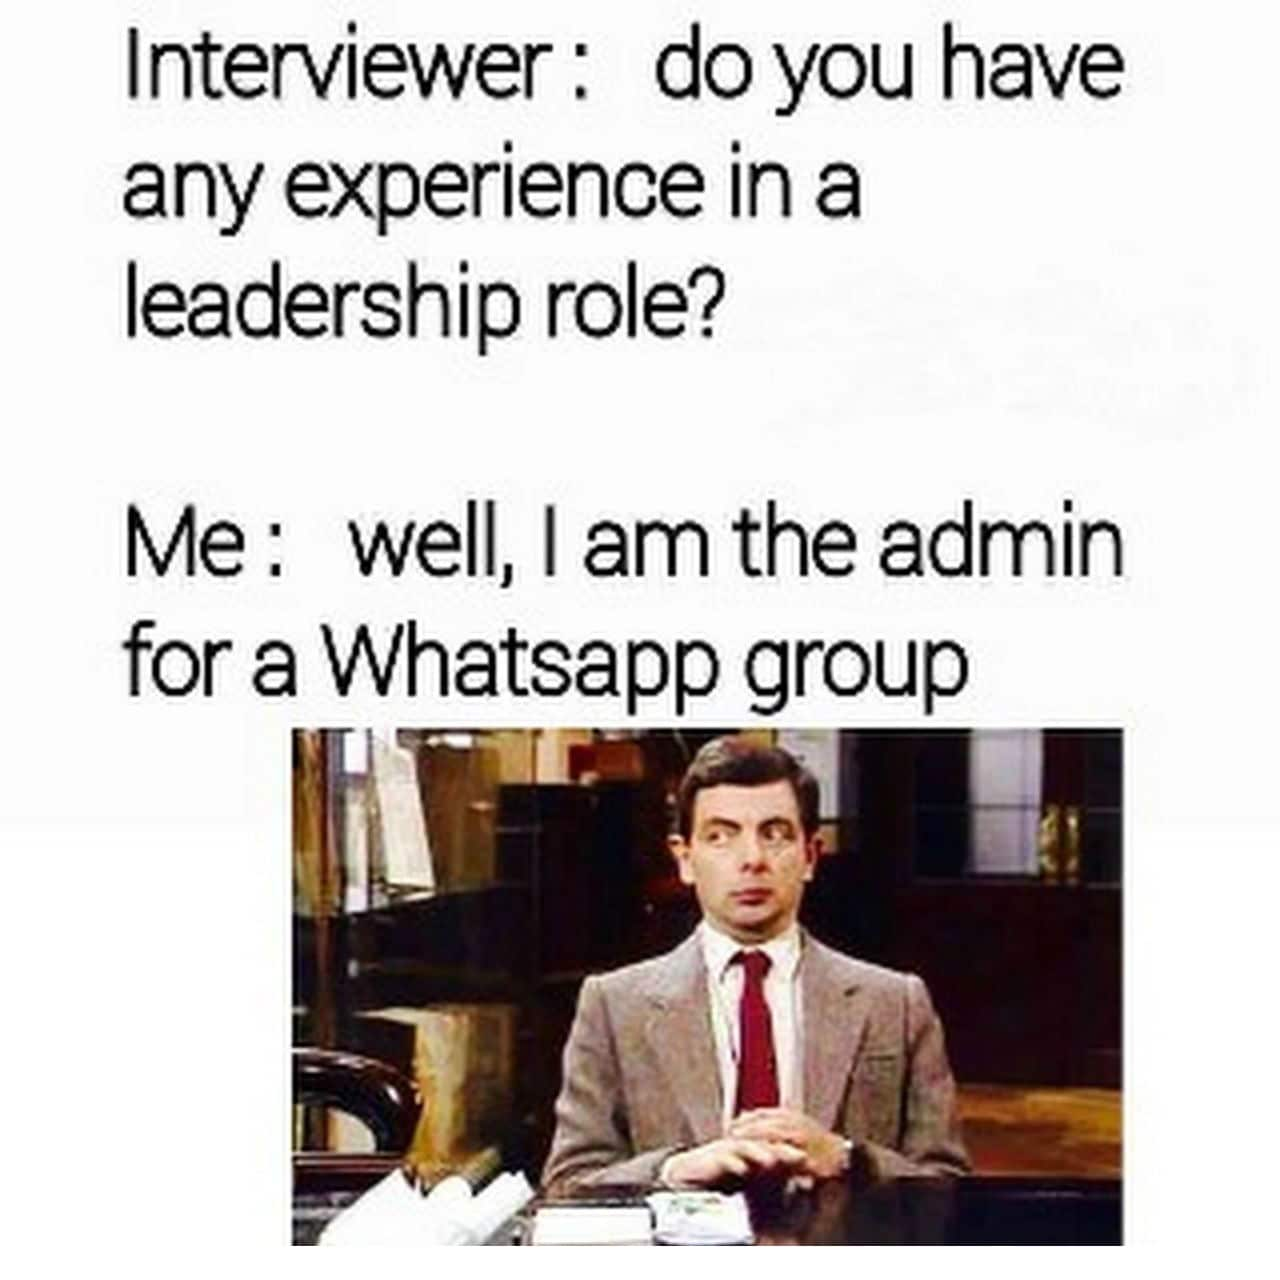 leadership role whatsapp group admin funny meme funny memes